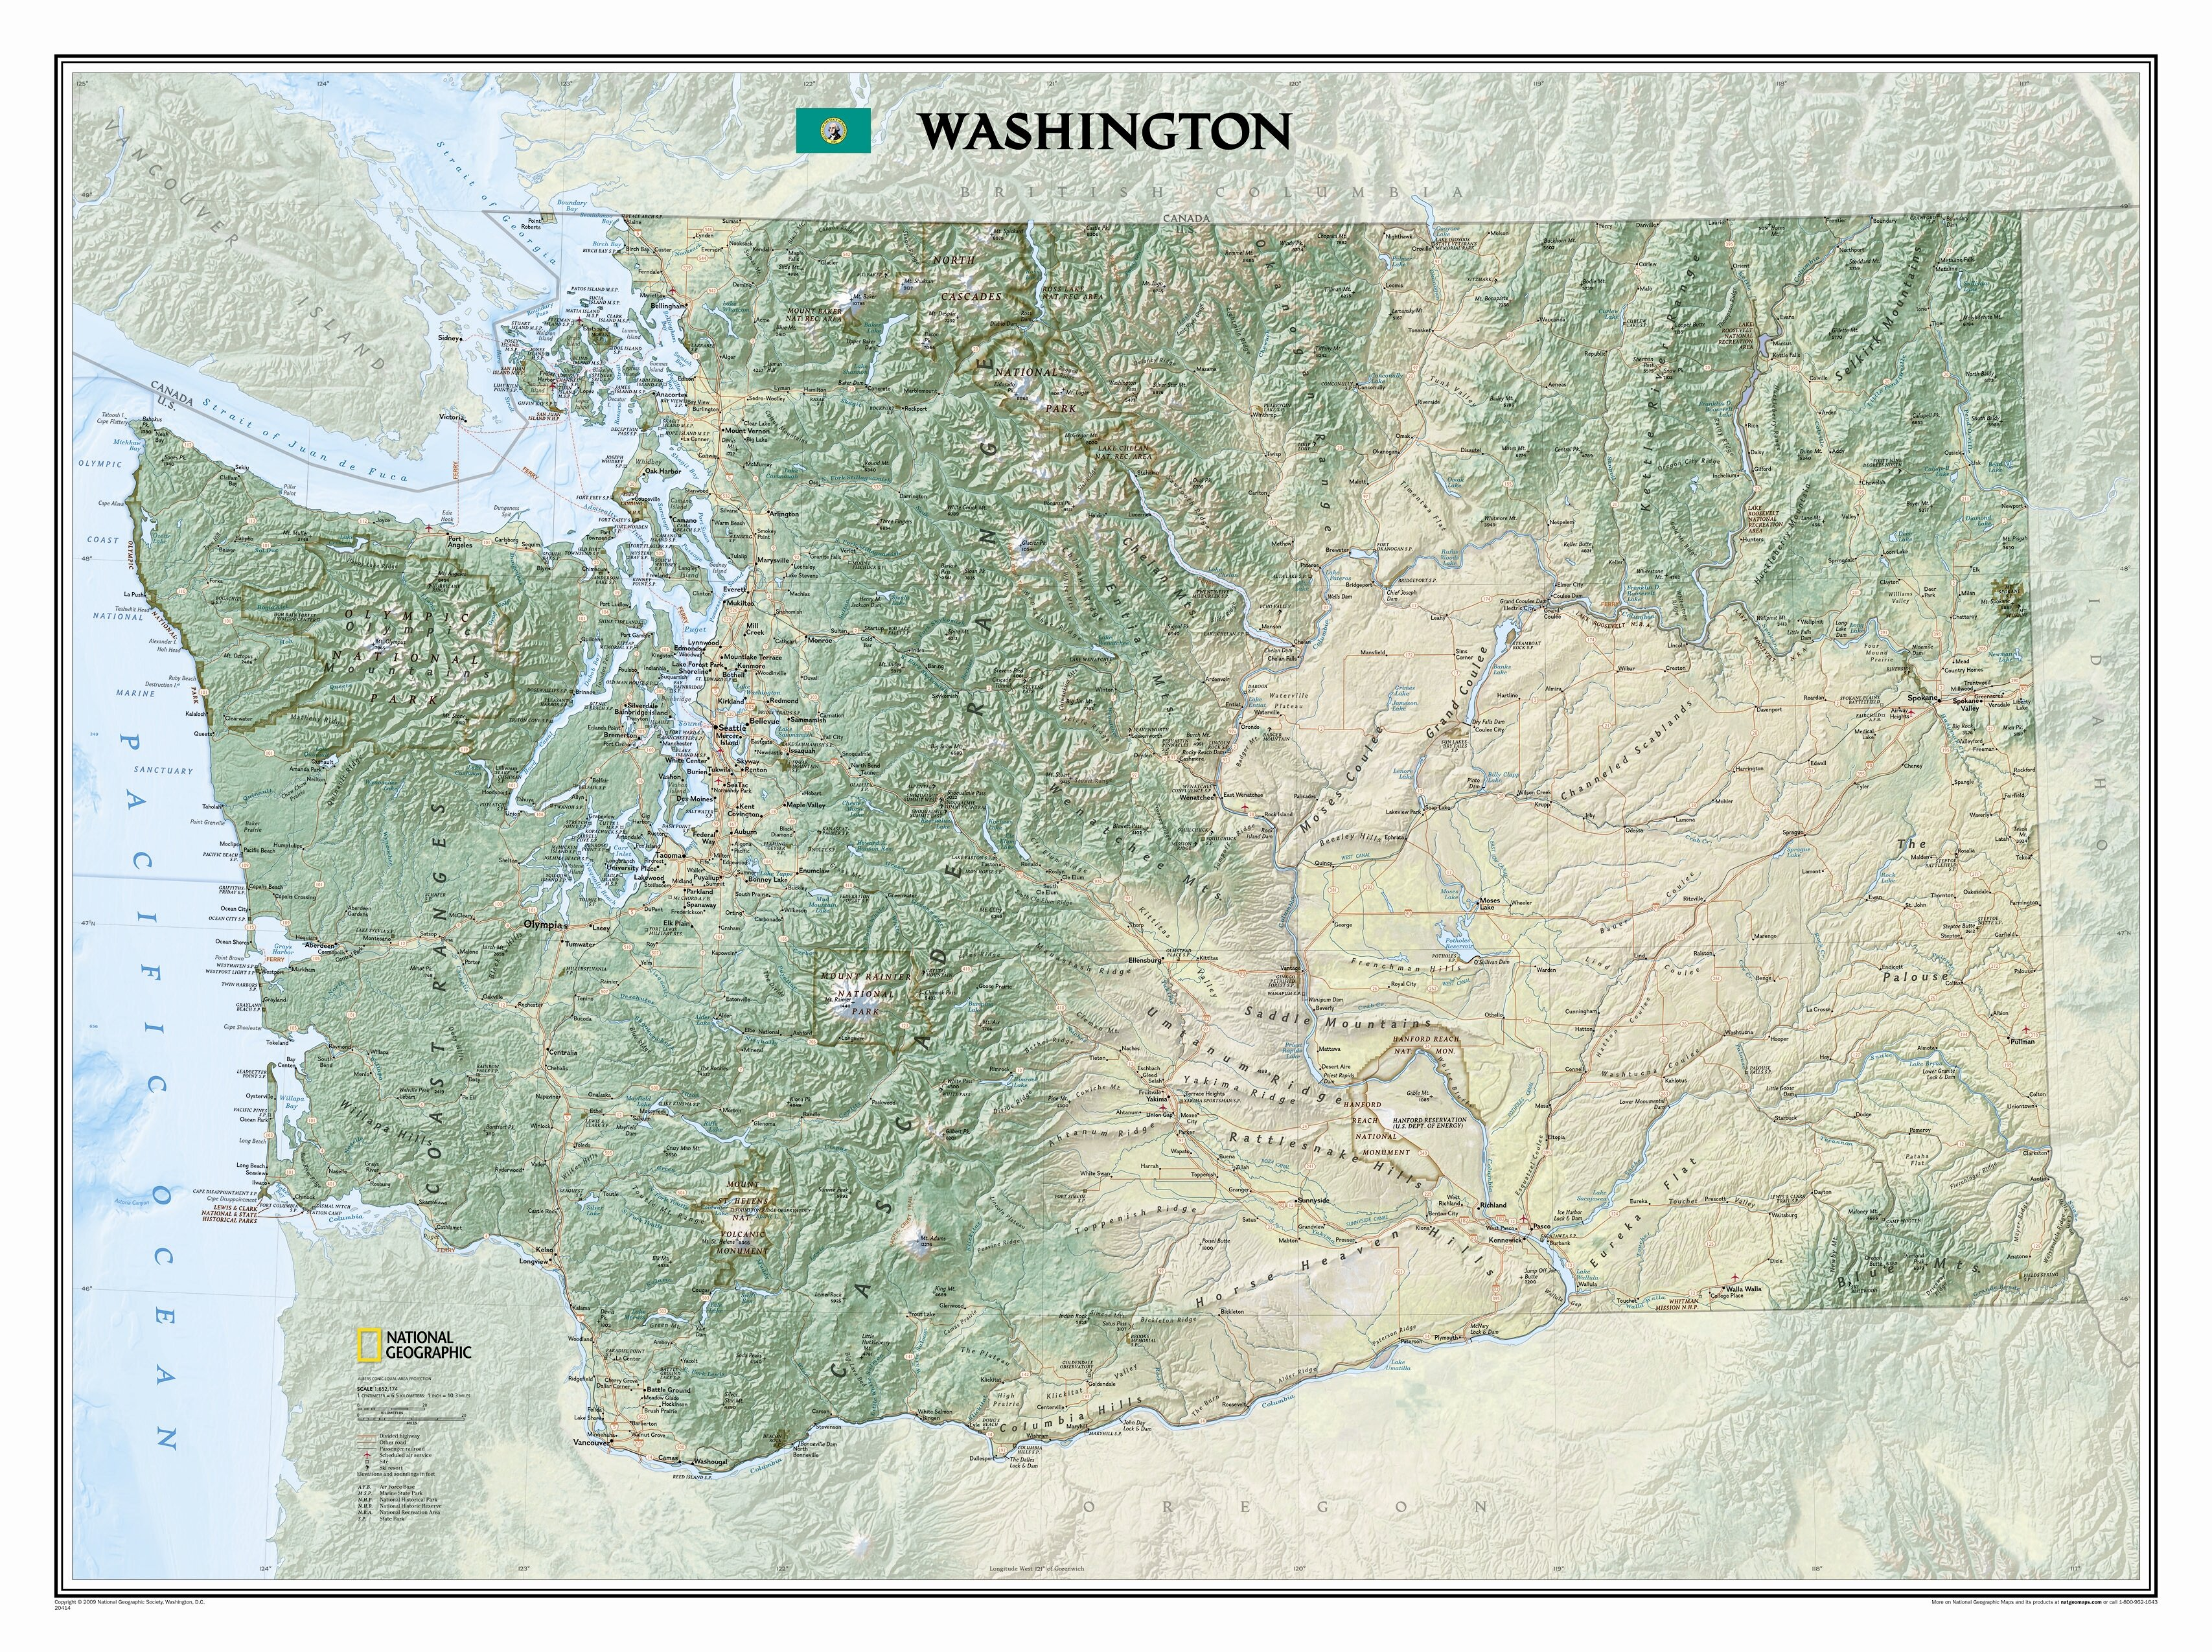 National Geographic Maps Washington State Wall Map | Wayfair